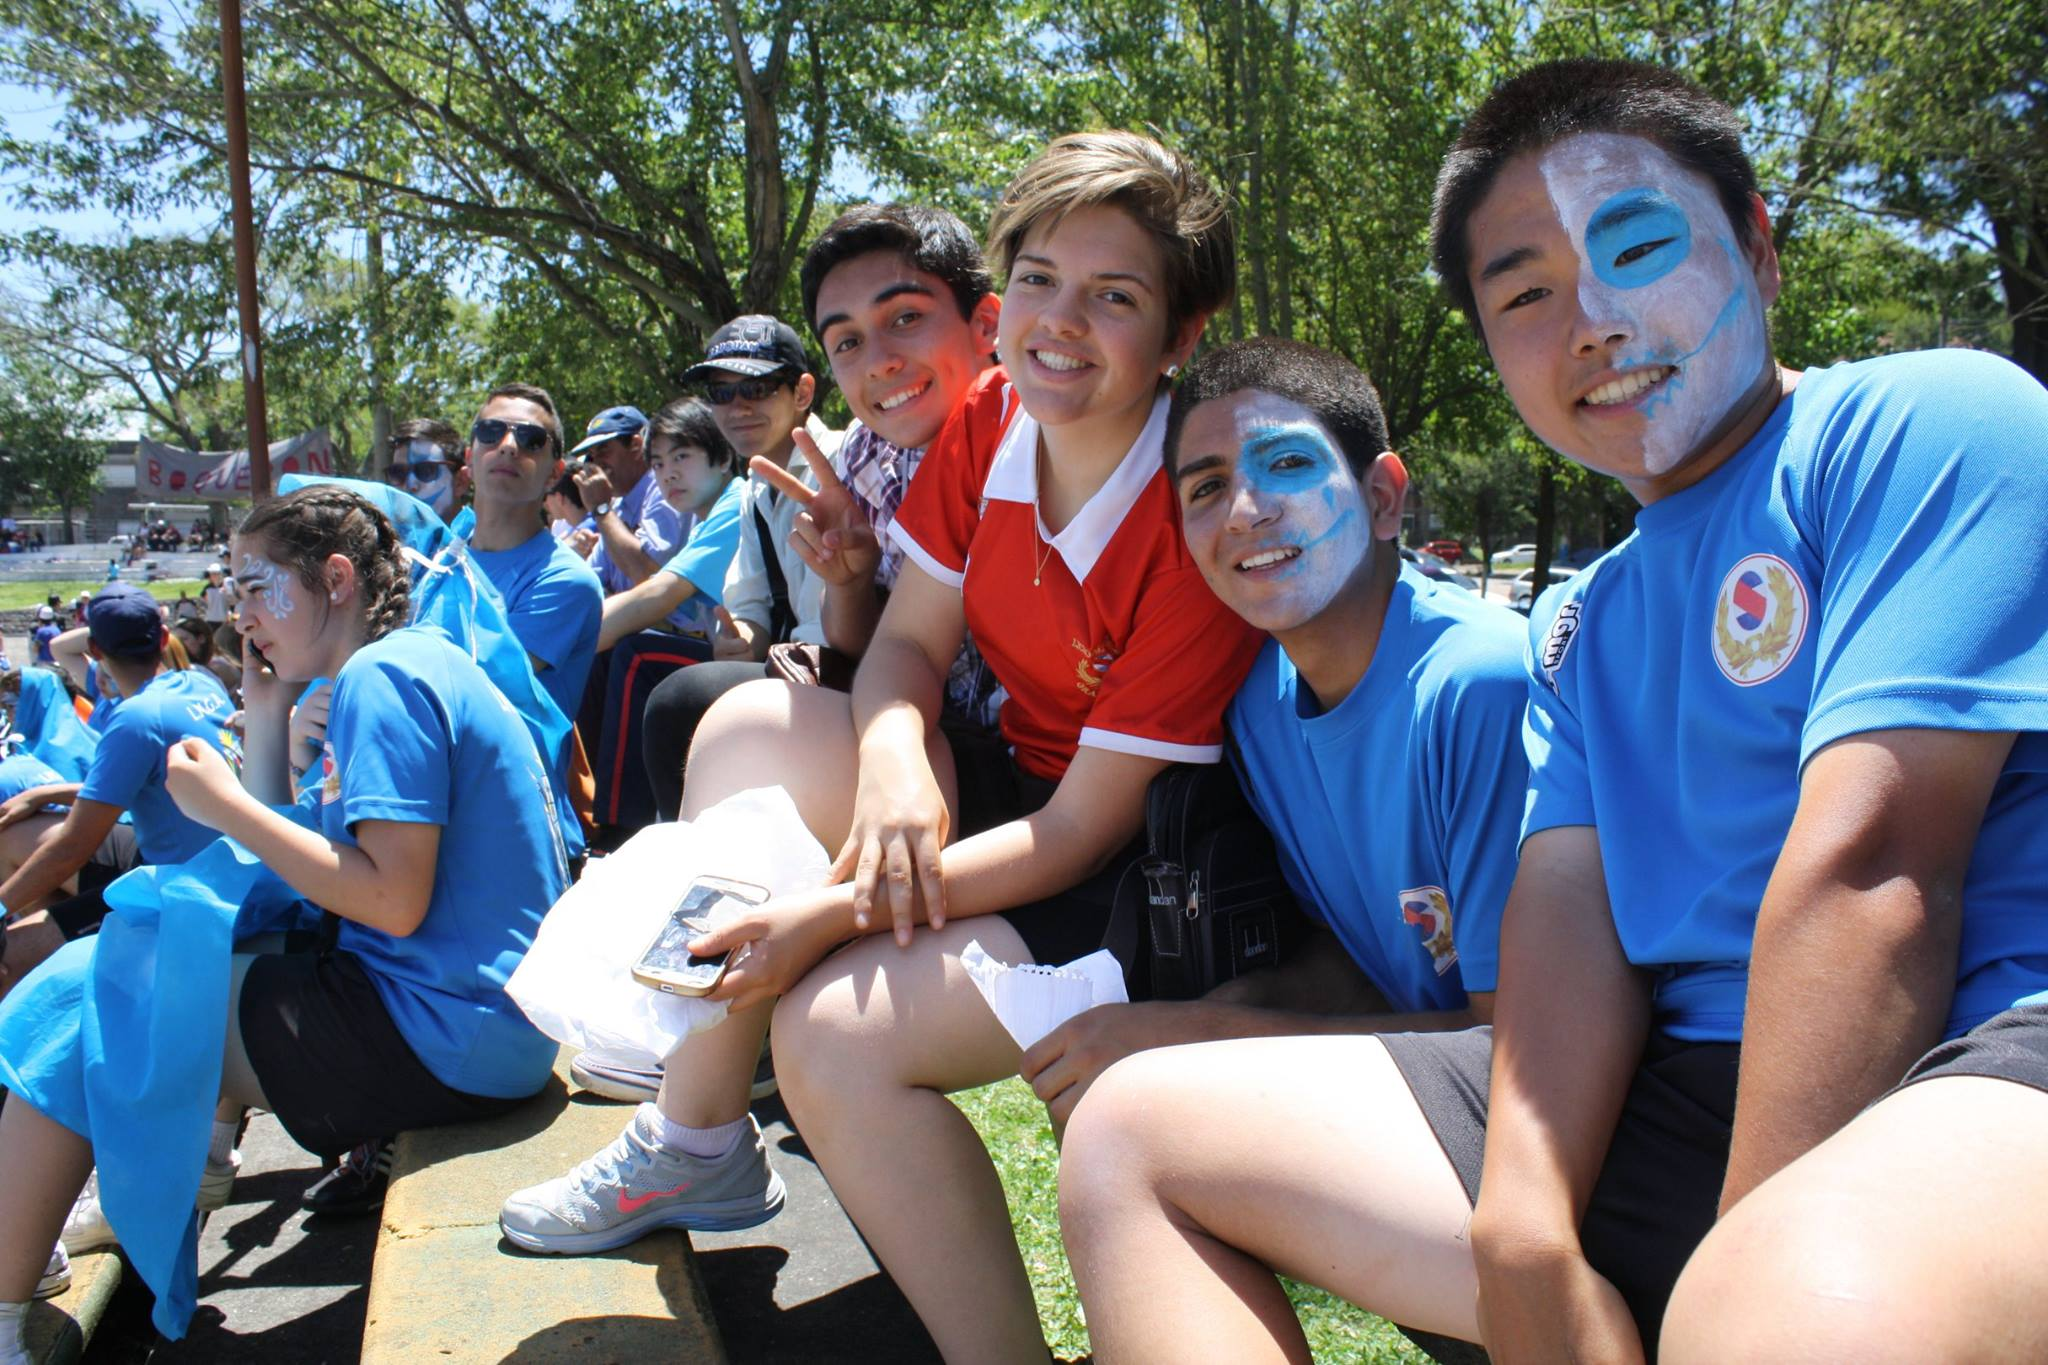 Me (middle), my brother (right of me), and other 2nd generation at Militar High School Festival.